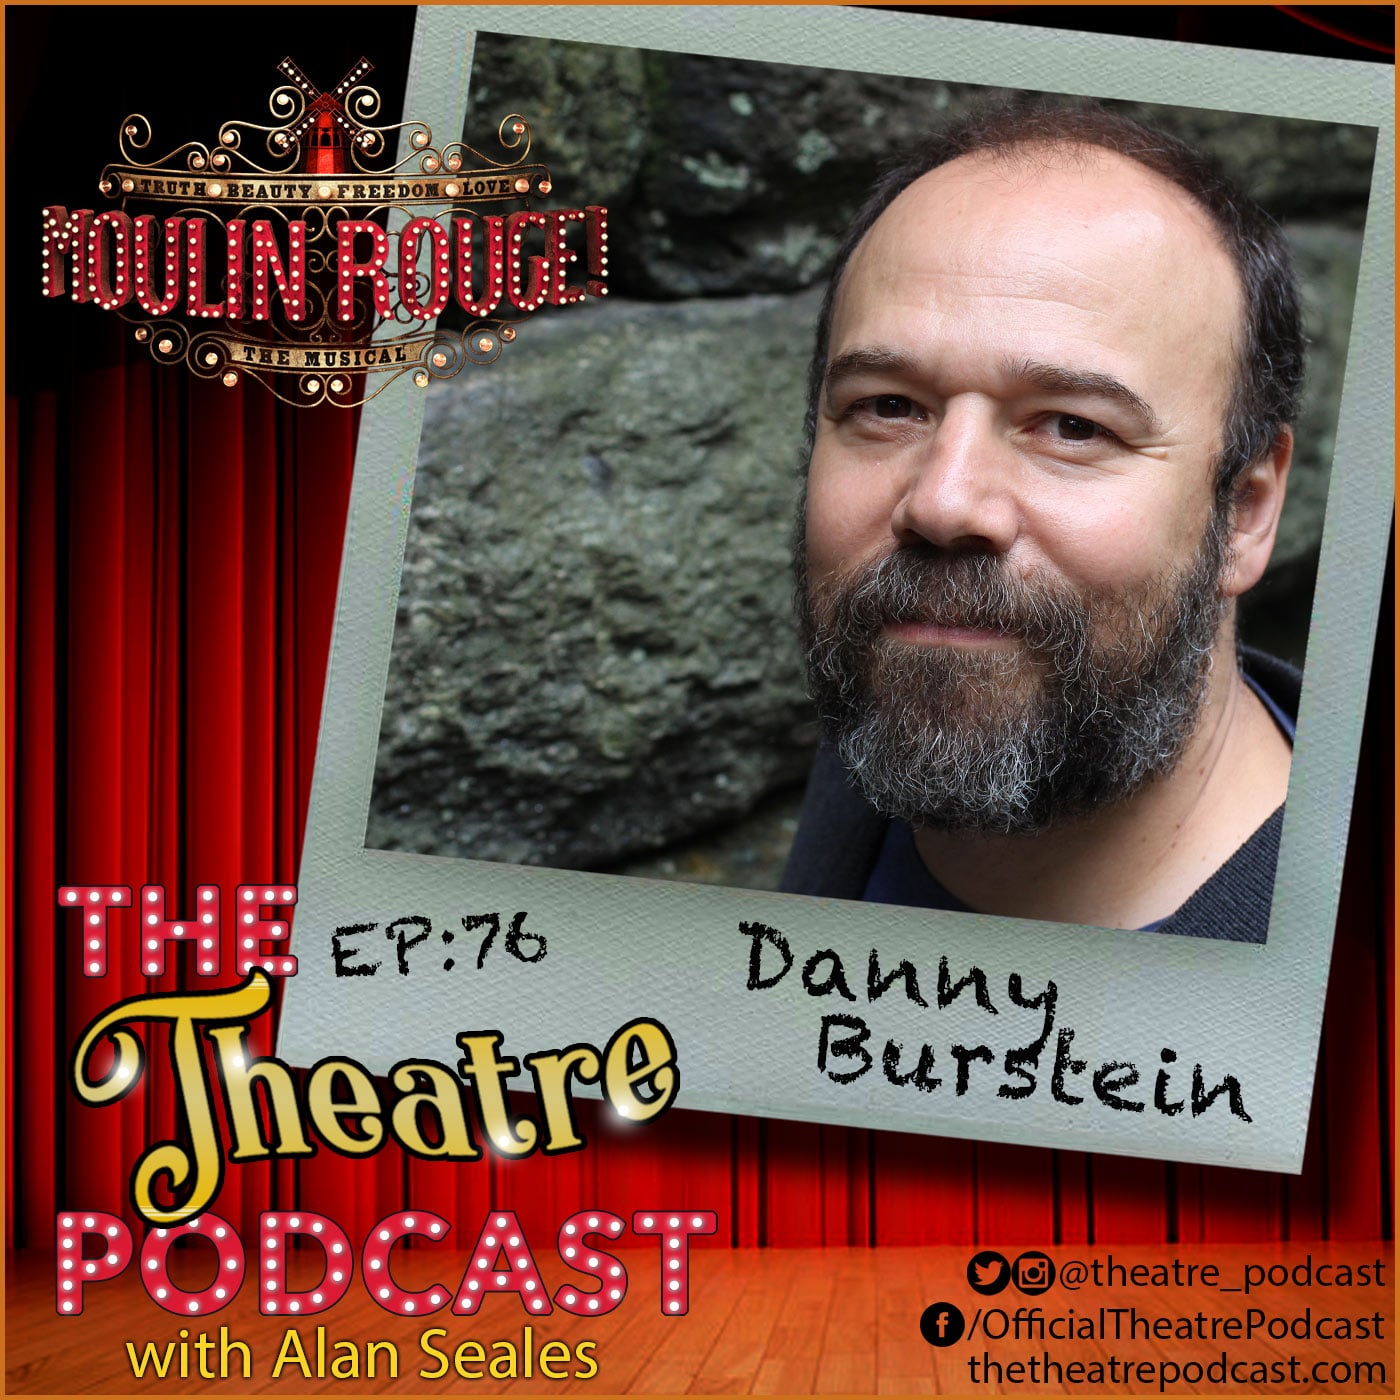 The Theatre Podcast Episode 76 Danny Burstein